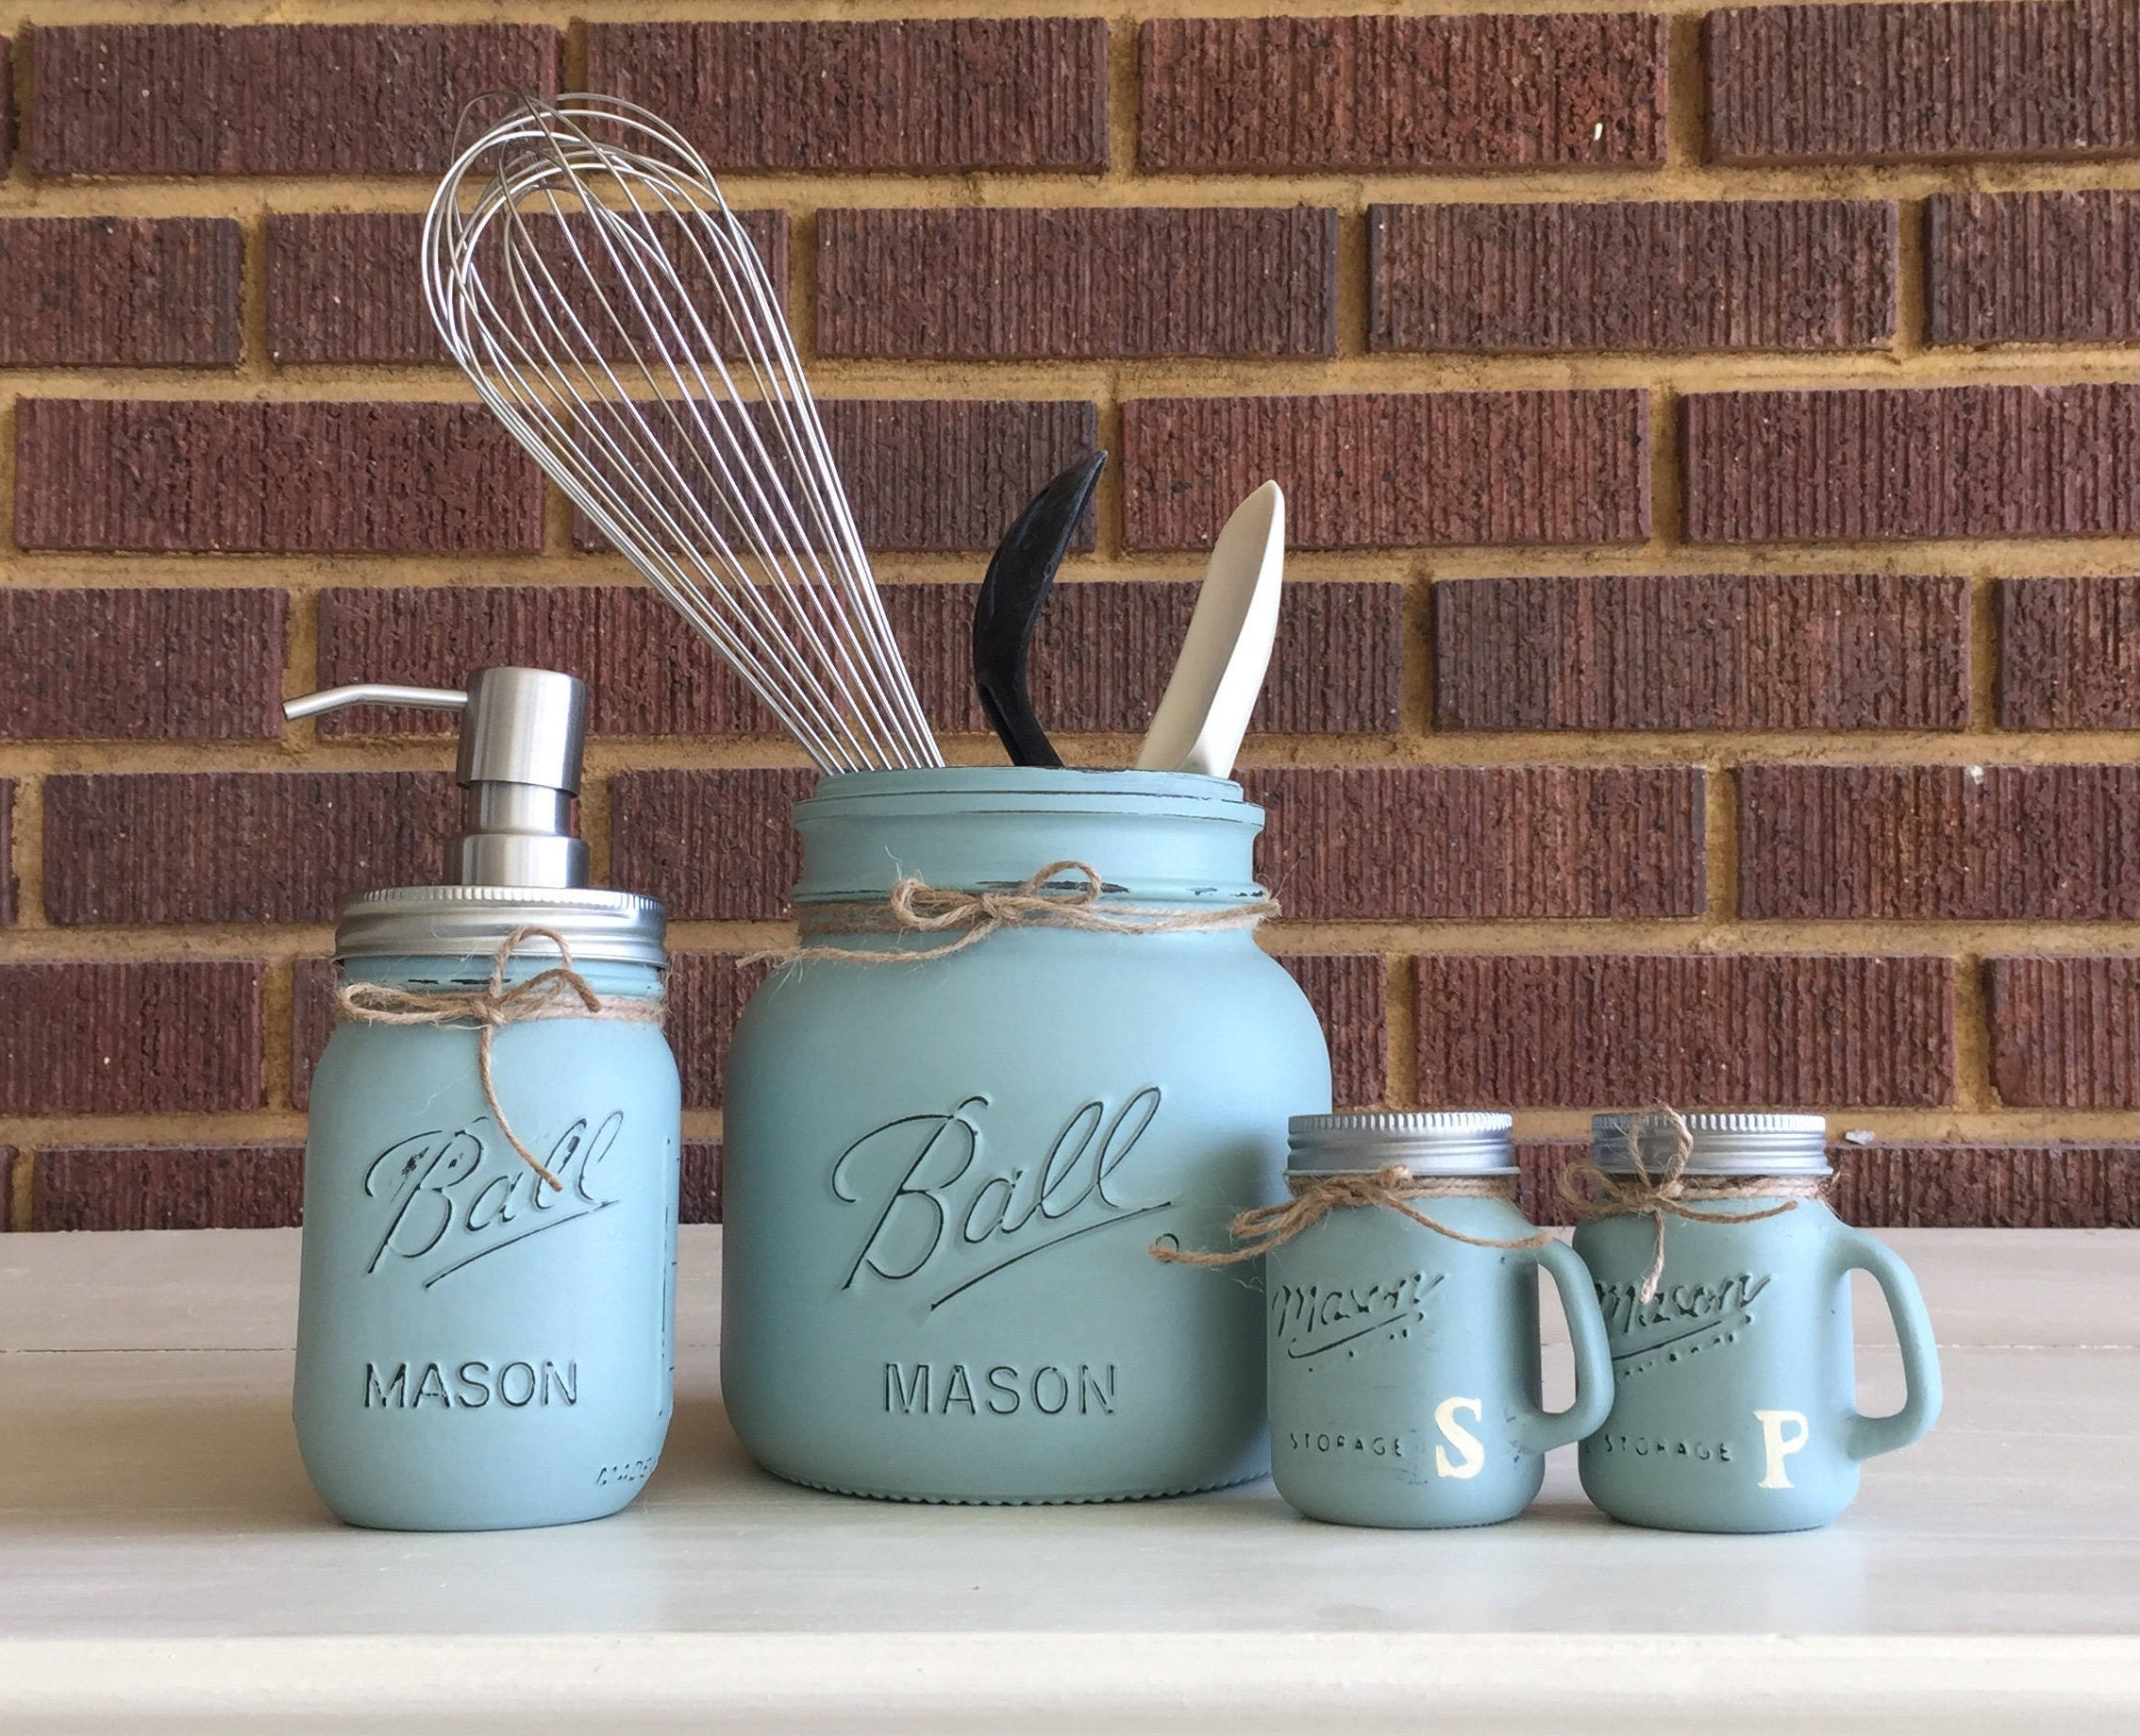 Mason Jar Decor Mason Jar Kitchen Decor Utensil Holder Salt